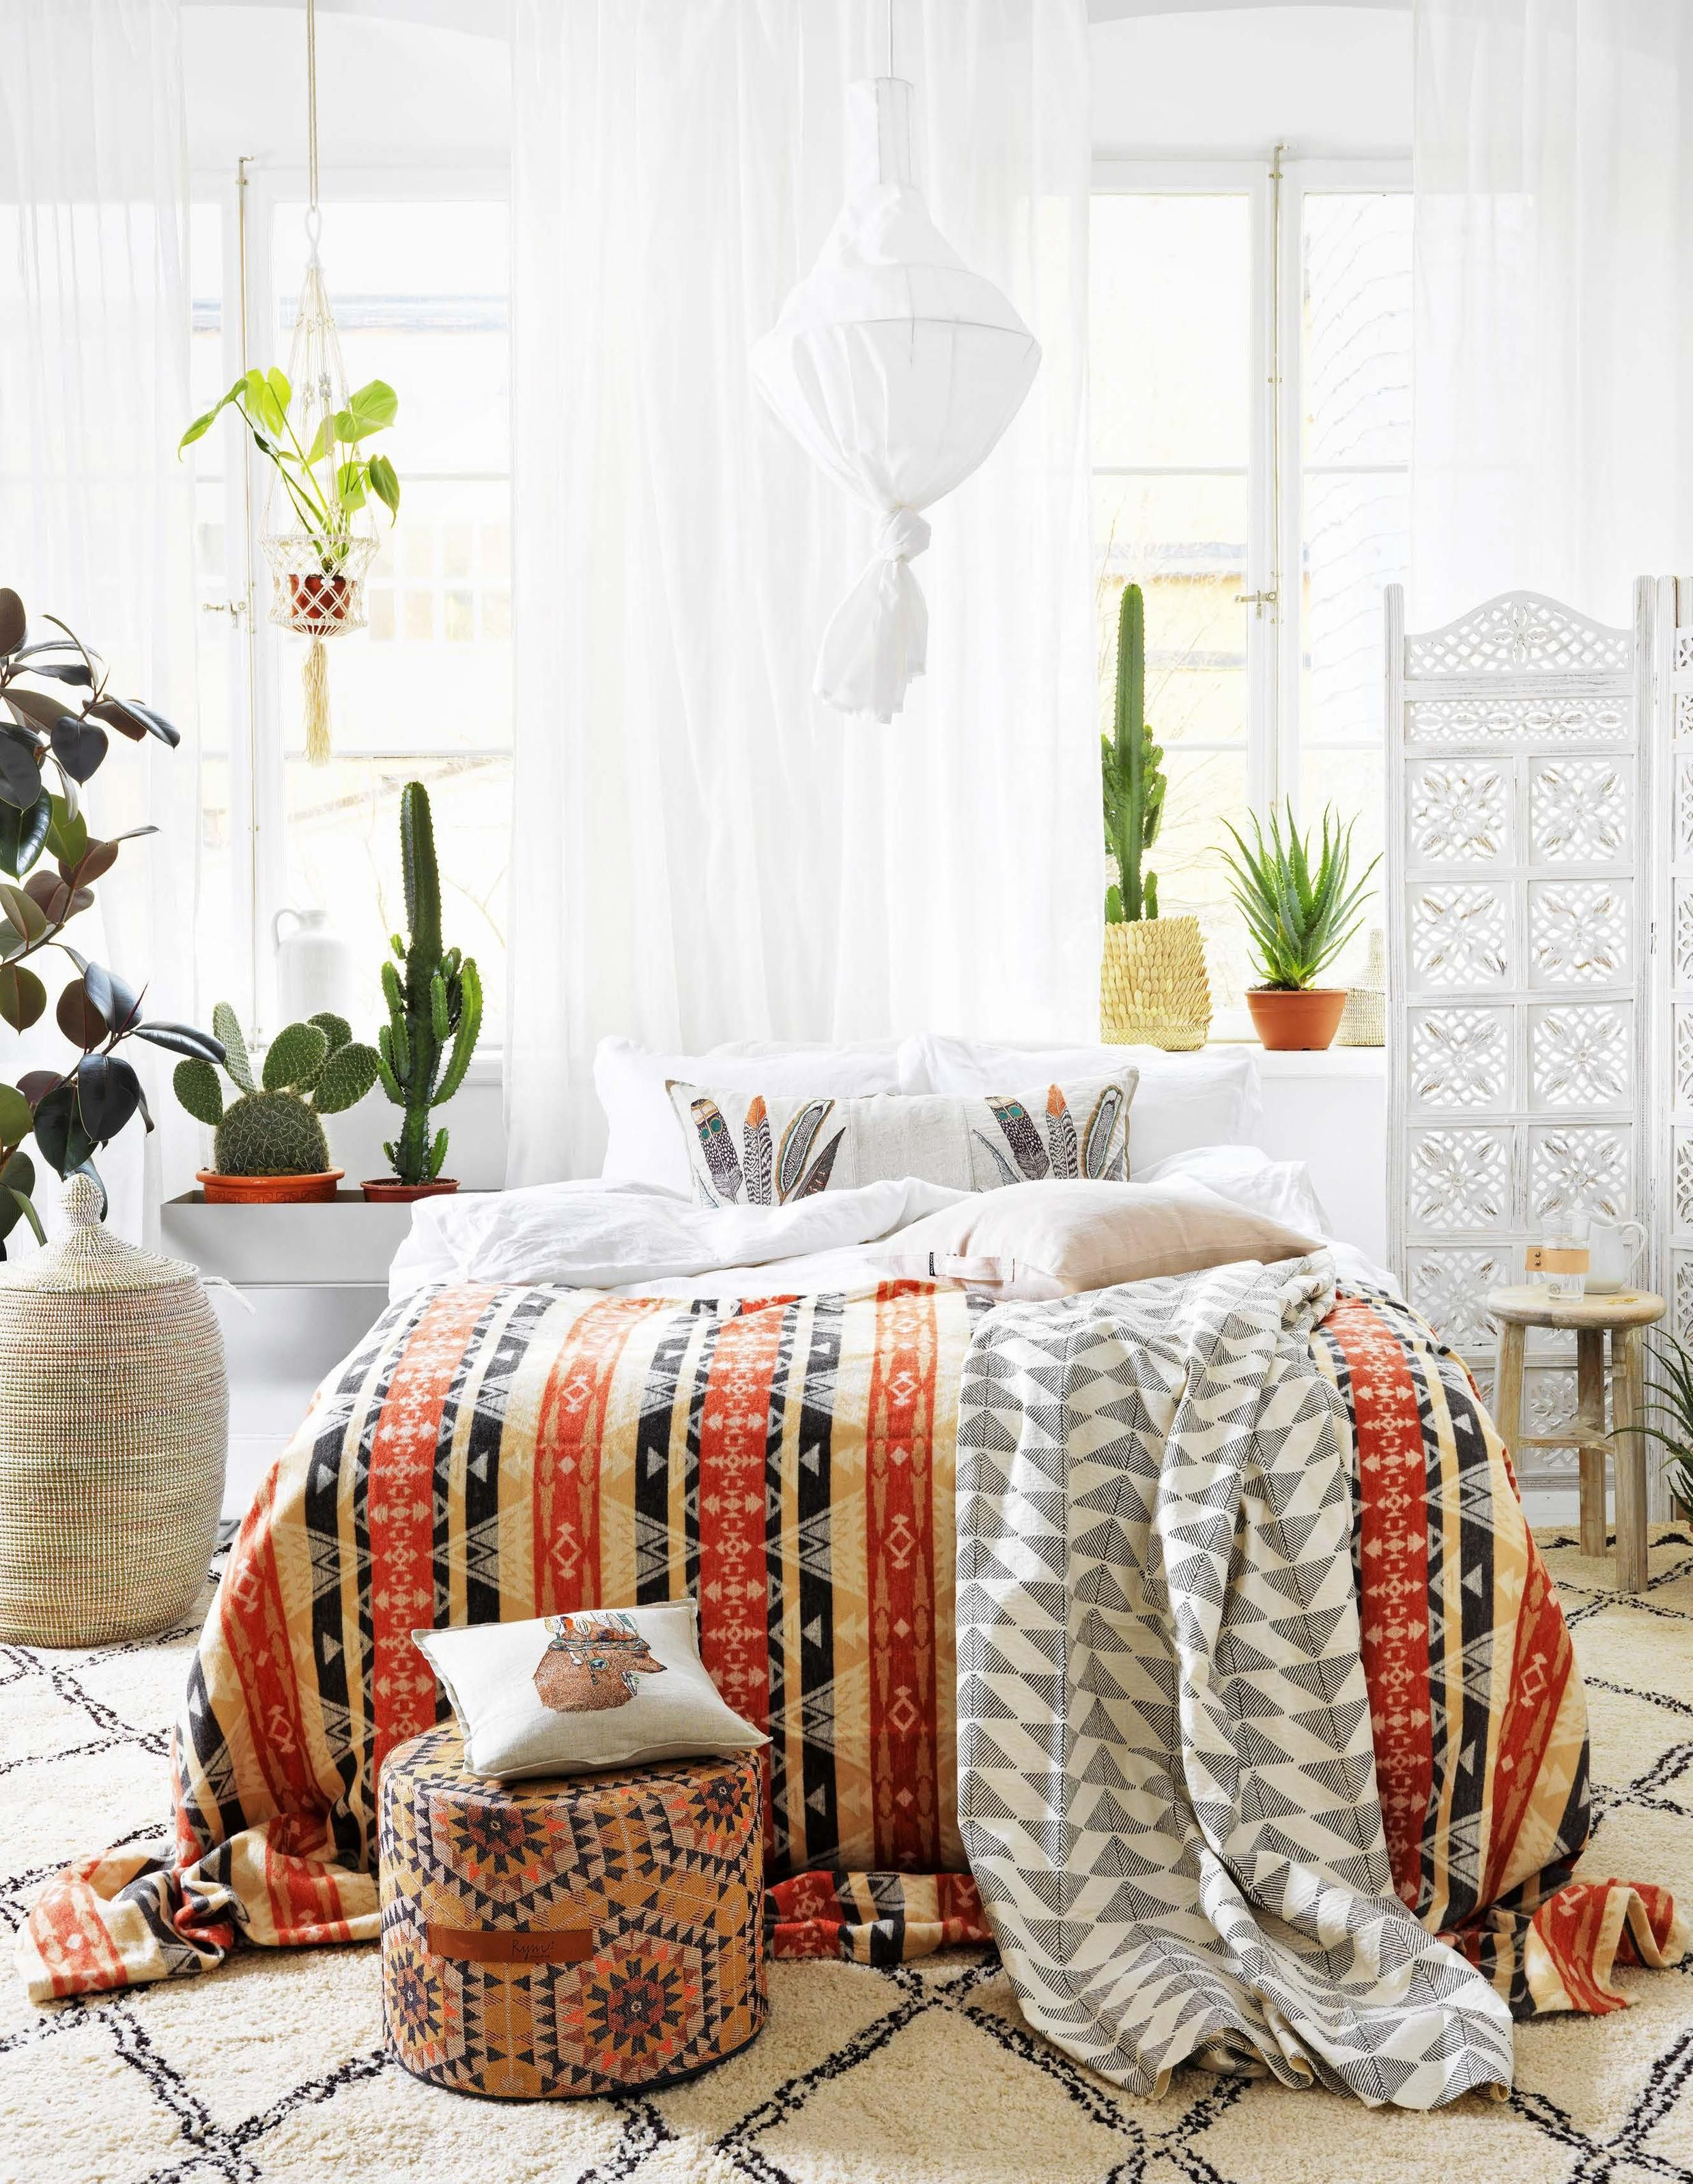 A Scandi boho bedroom with colorful plaid Chic apartment